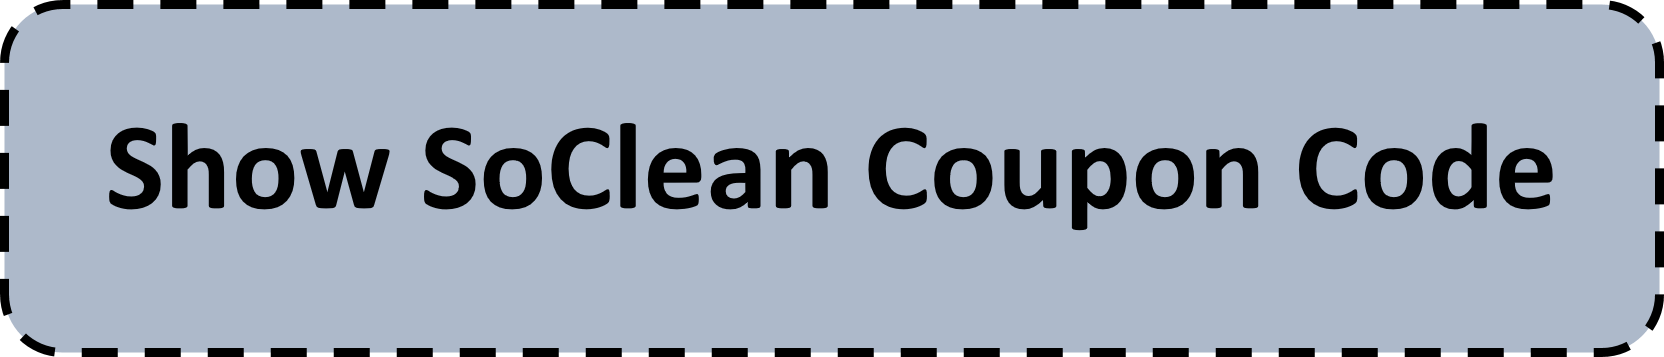 Soclean coupon code